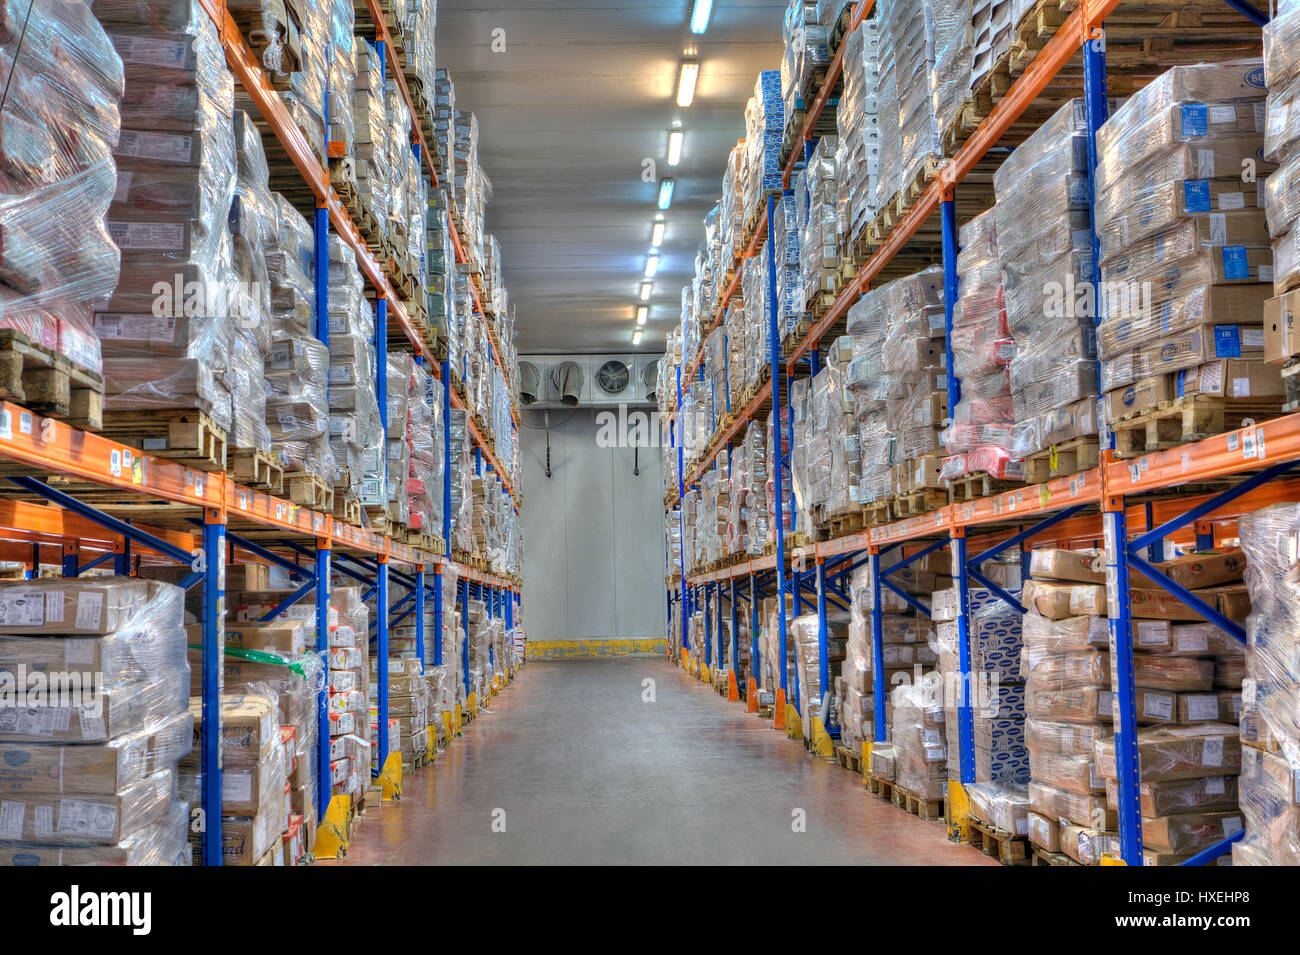 cold storage warehouse stock photos cold storage warehouse stock